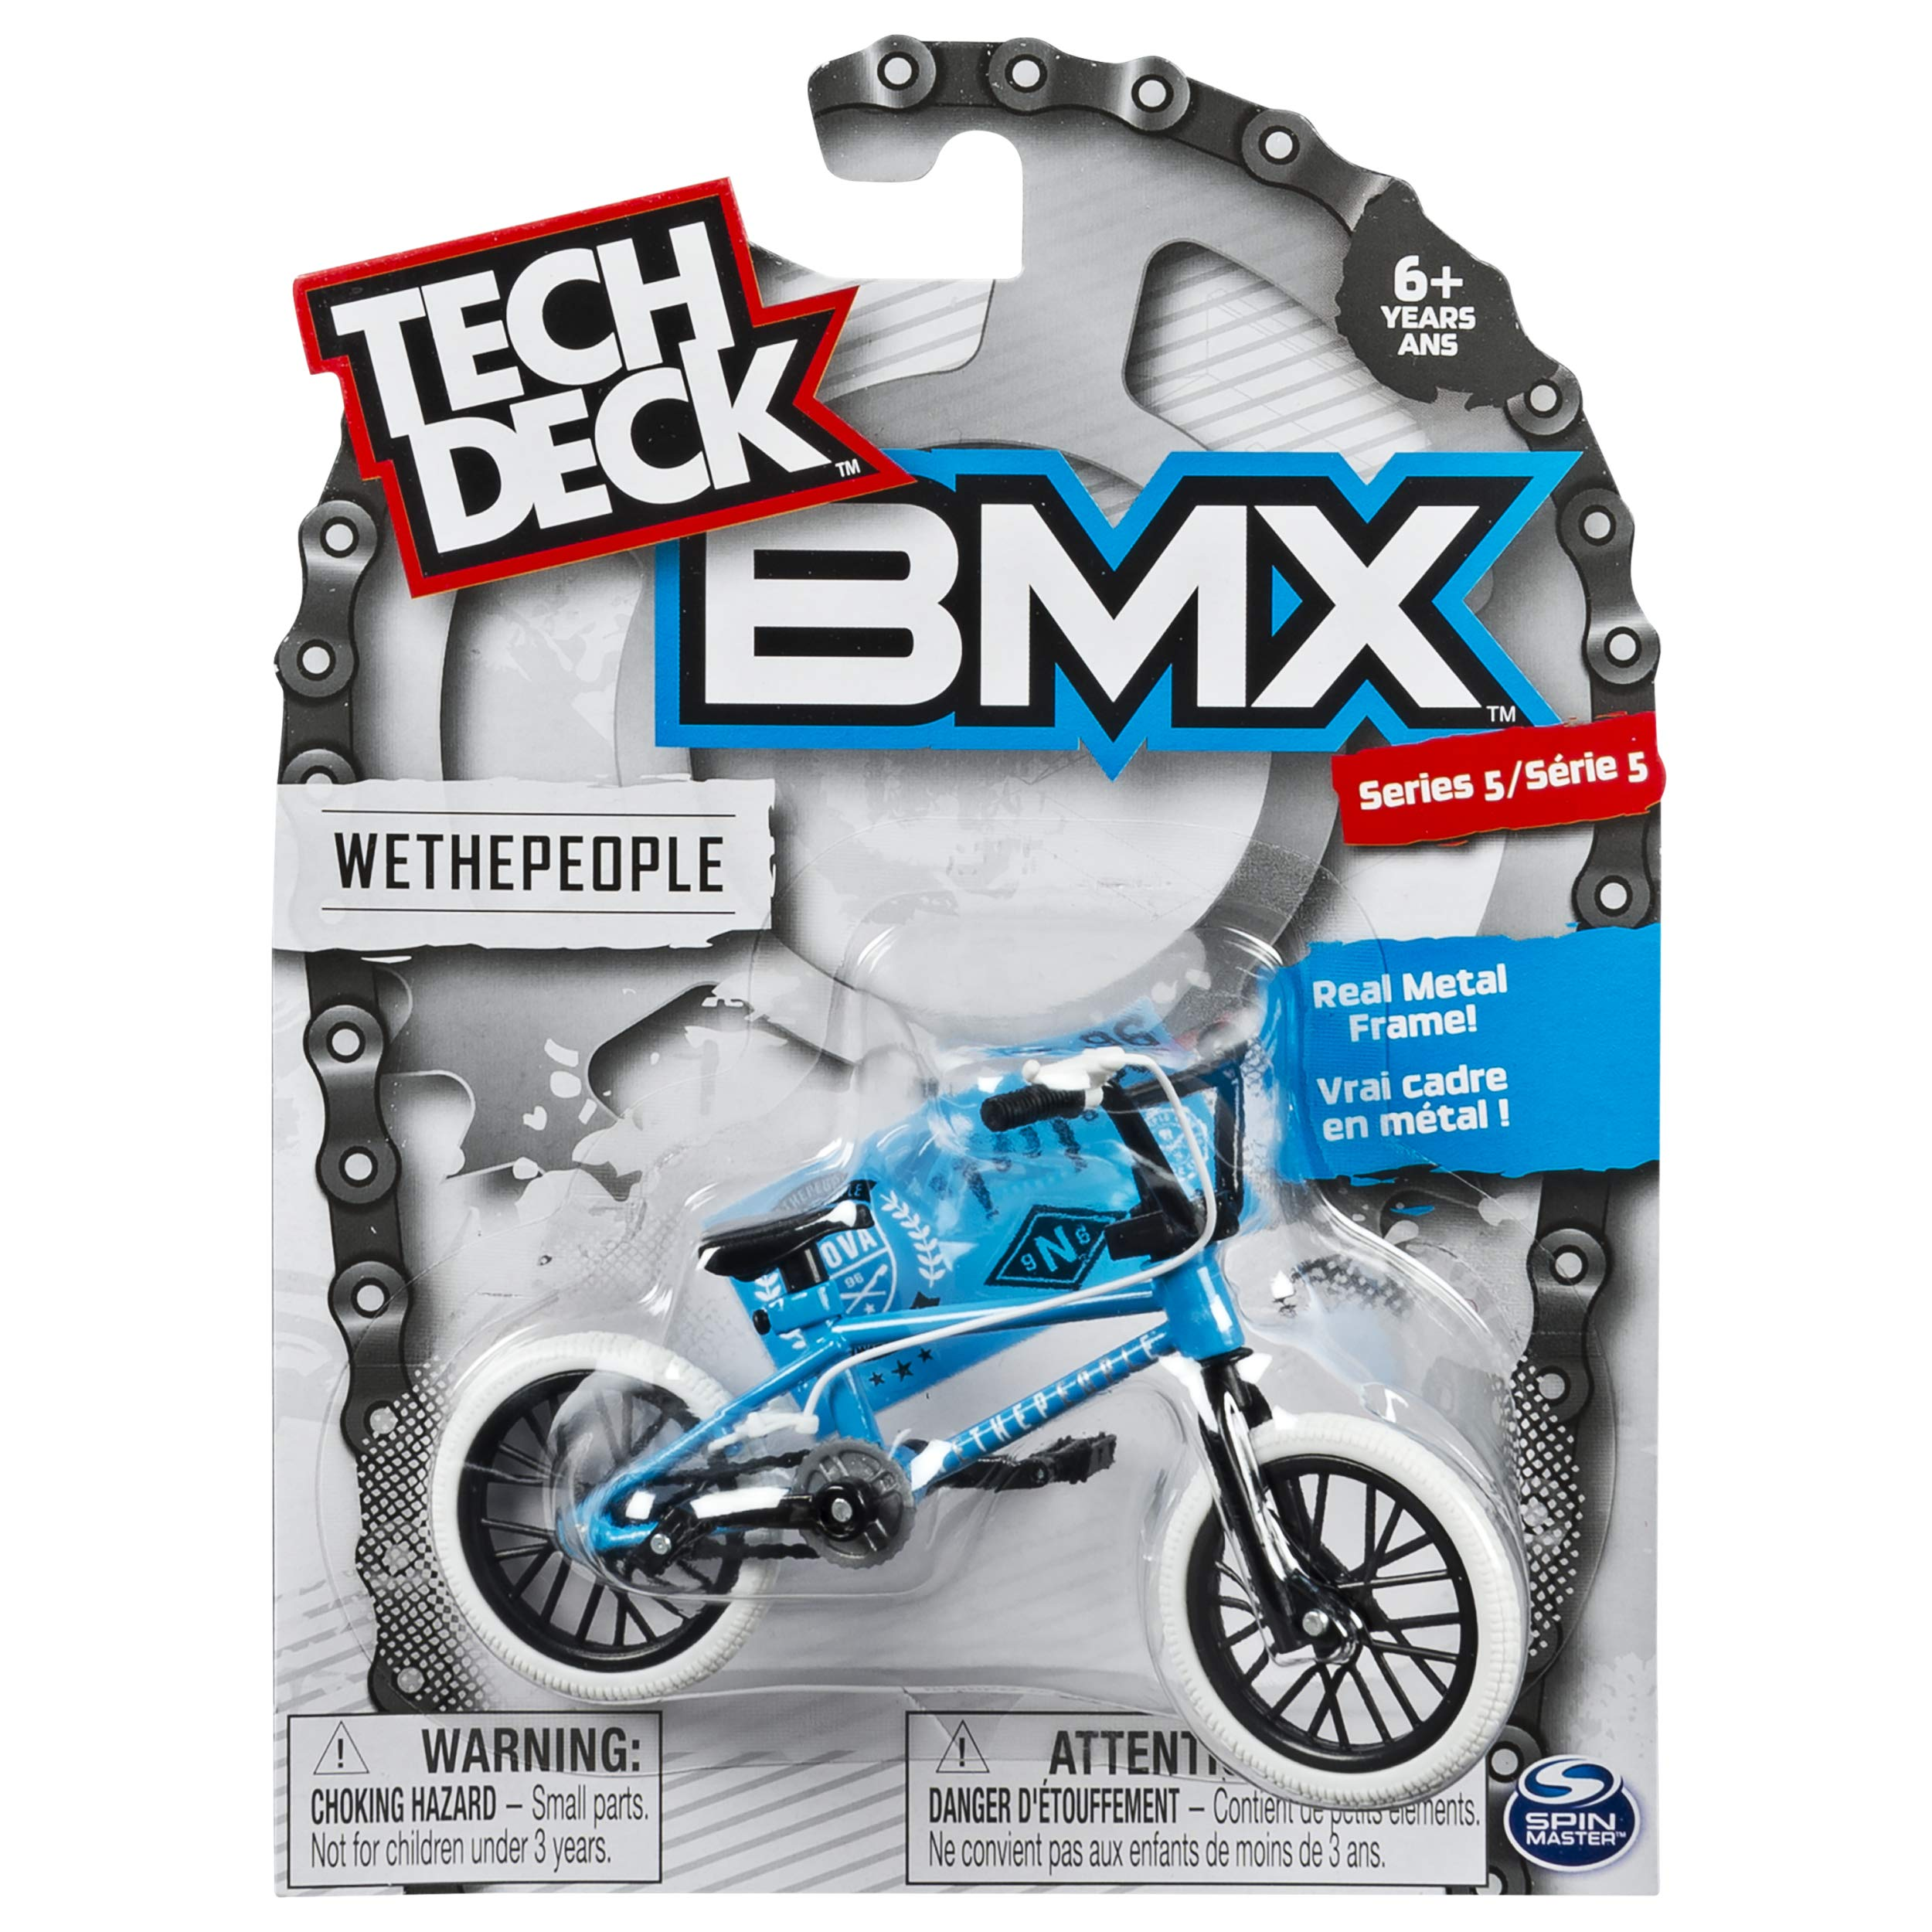 TECH DECK - BMX Finger Bike - WeThePeople - White/Blue - Series 5 by TECH DECK